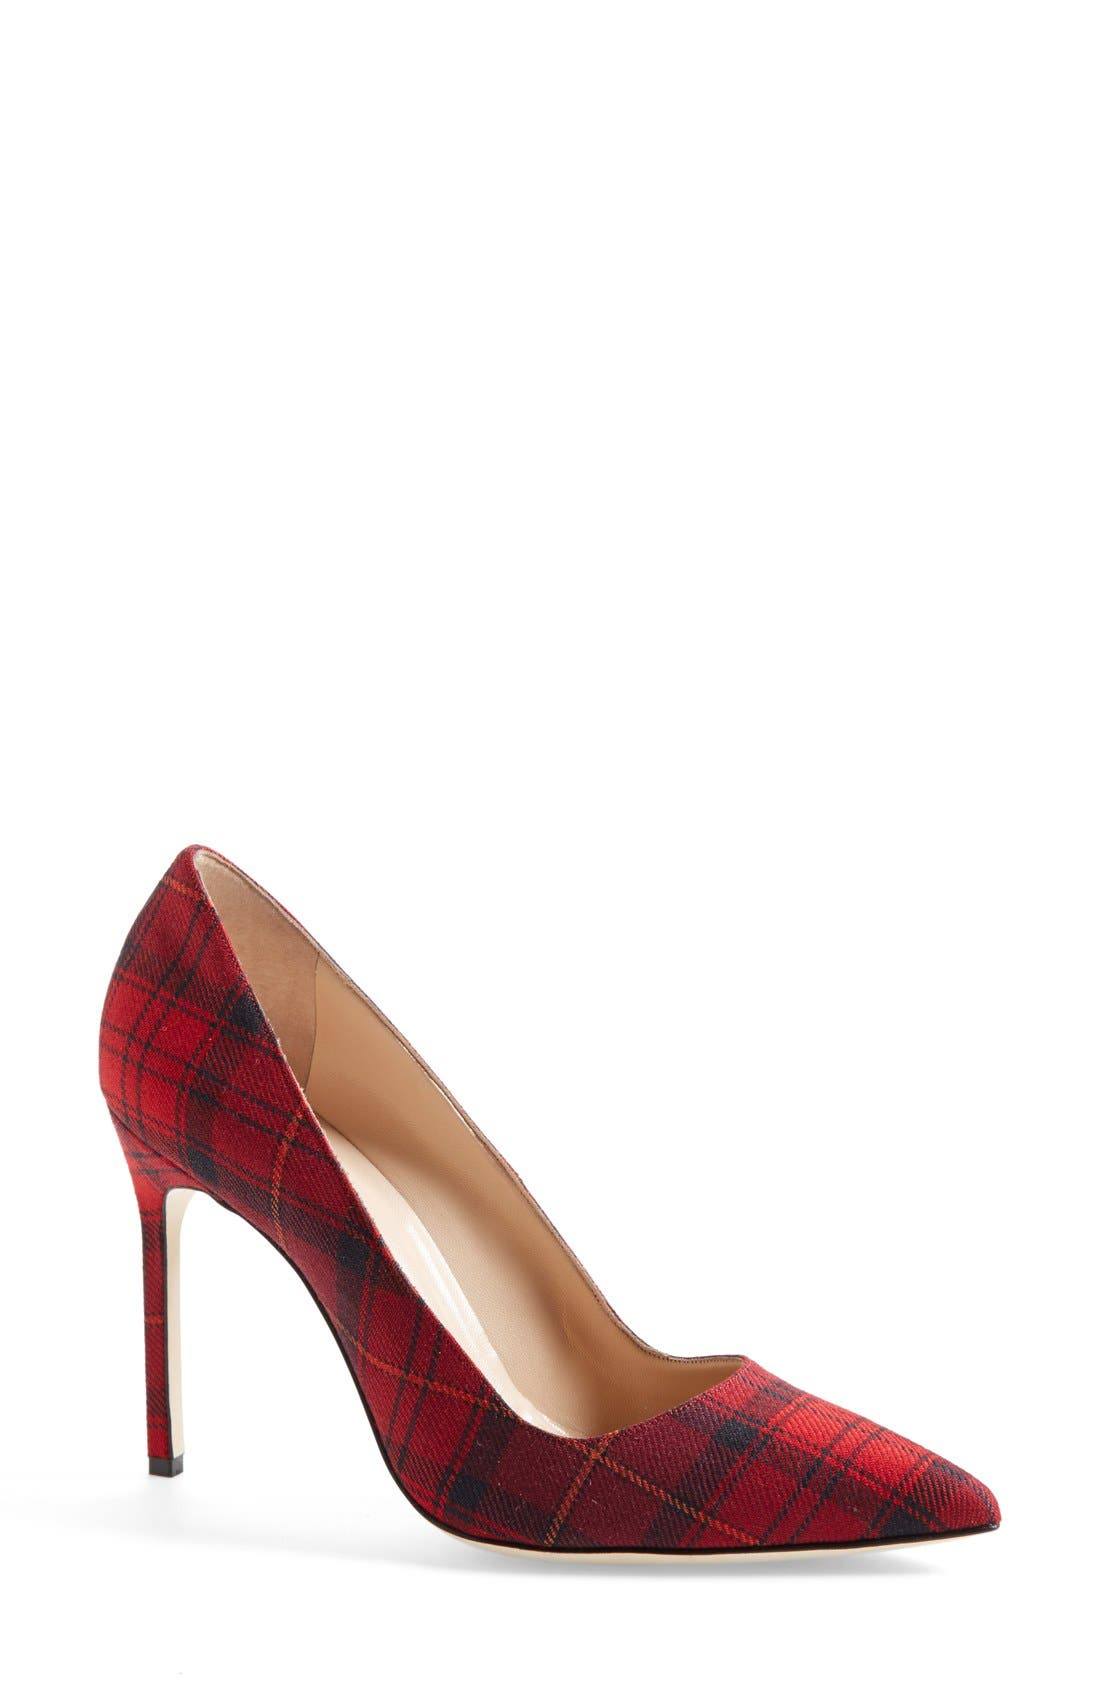 BB Pointy Toe Pump,                         Main,                         color, Red Plaid Fabric